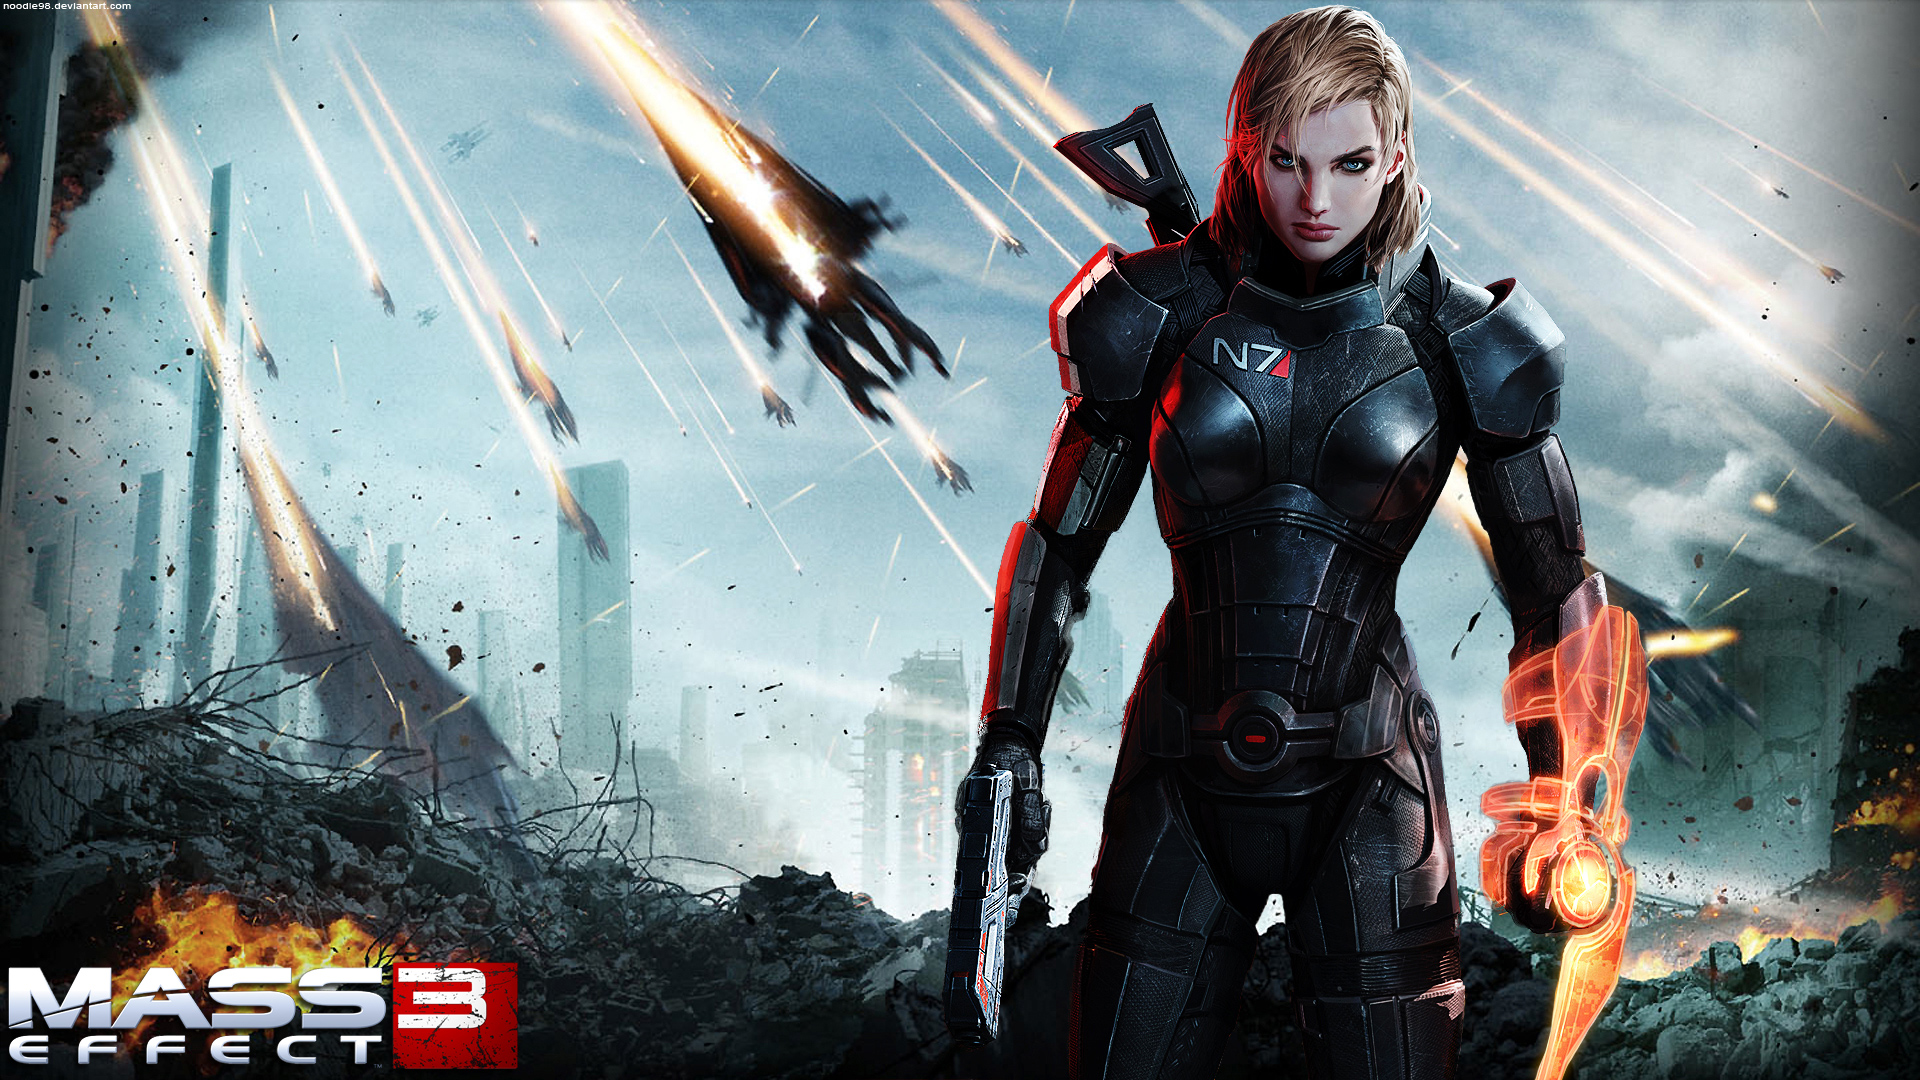 BlurryPhoenix Reflects: Mass Effect 3